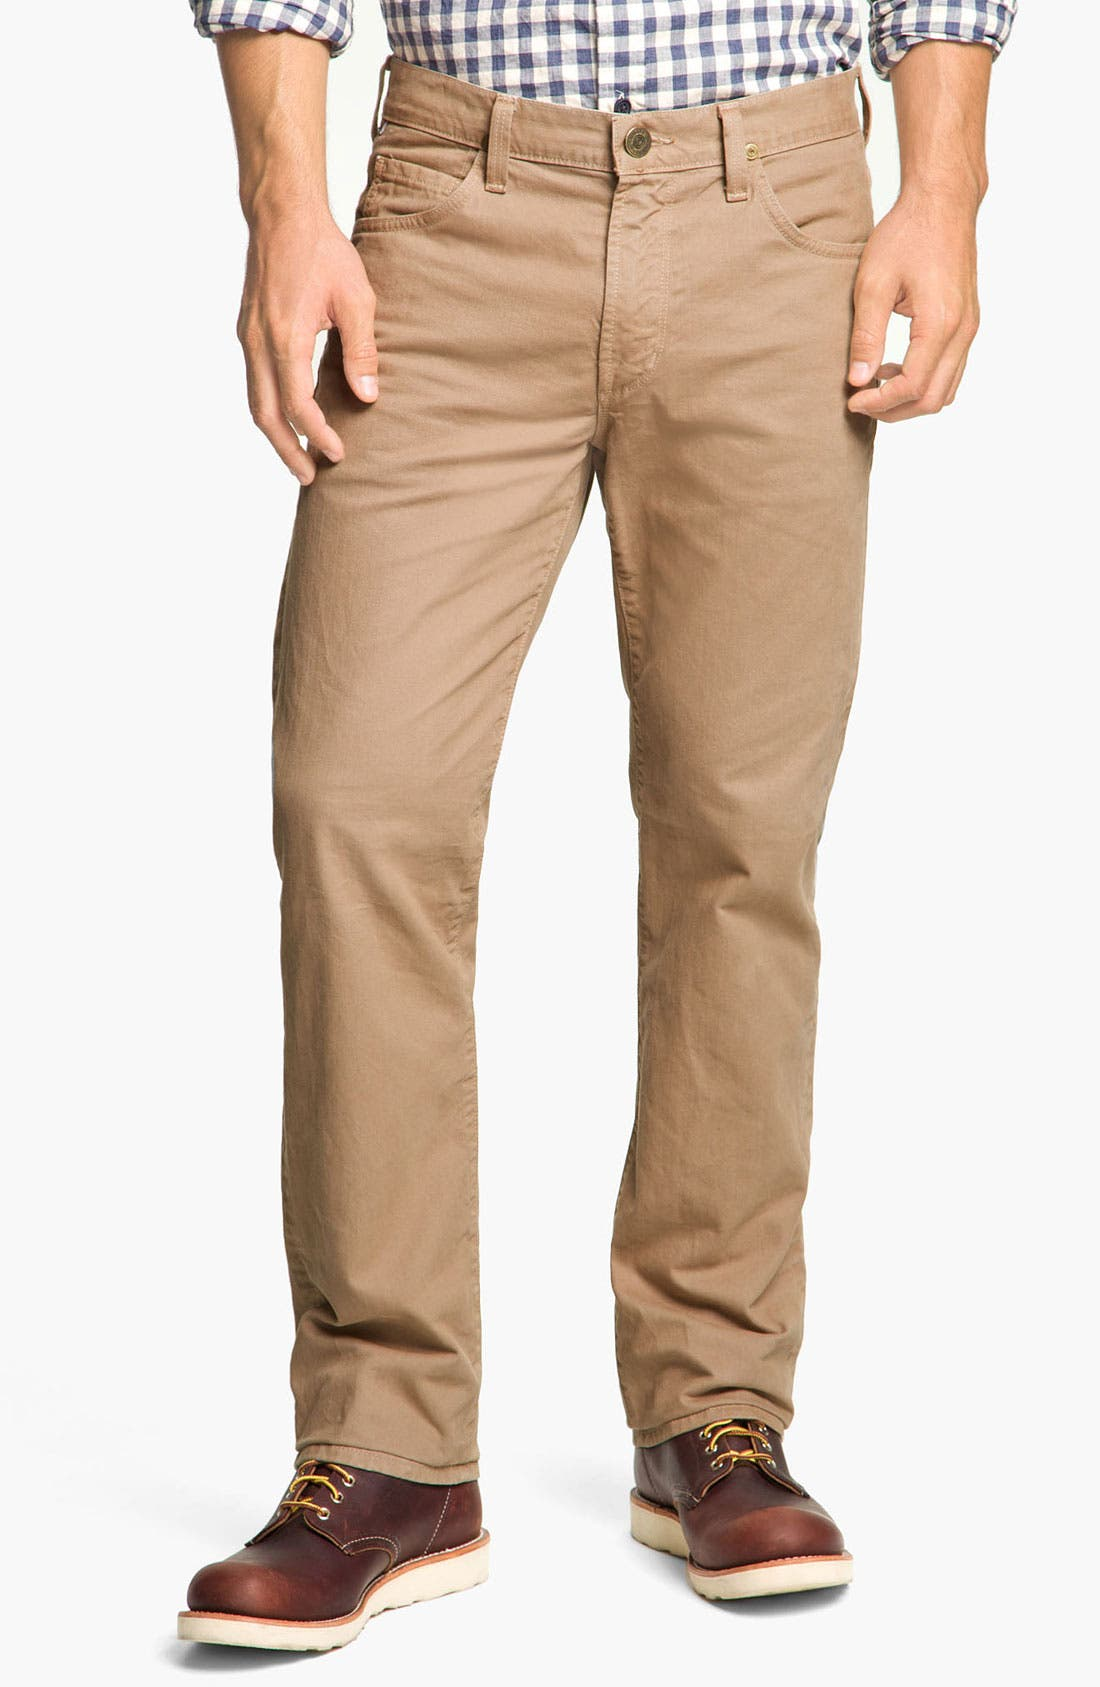 Alternate Image 1 Selected - Citizens of Humanity 'Sid' Straight Leg Jeans (Umber)